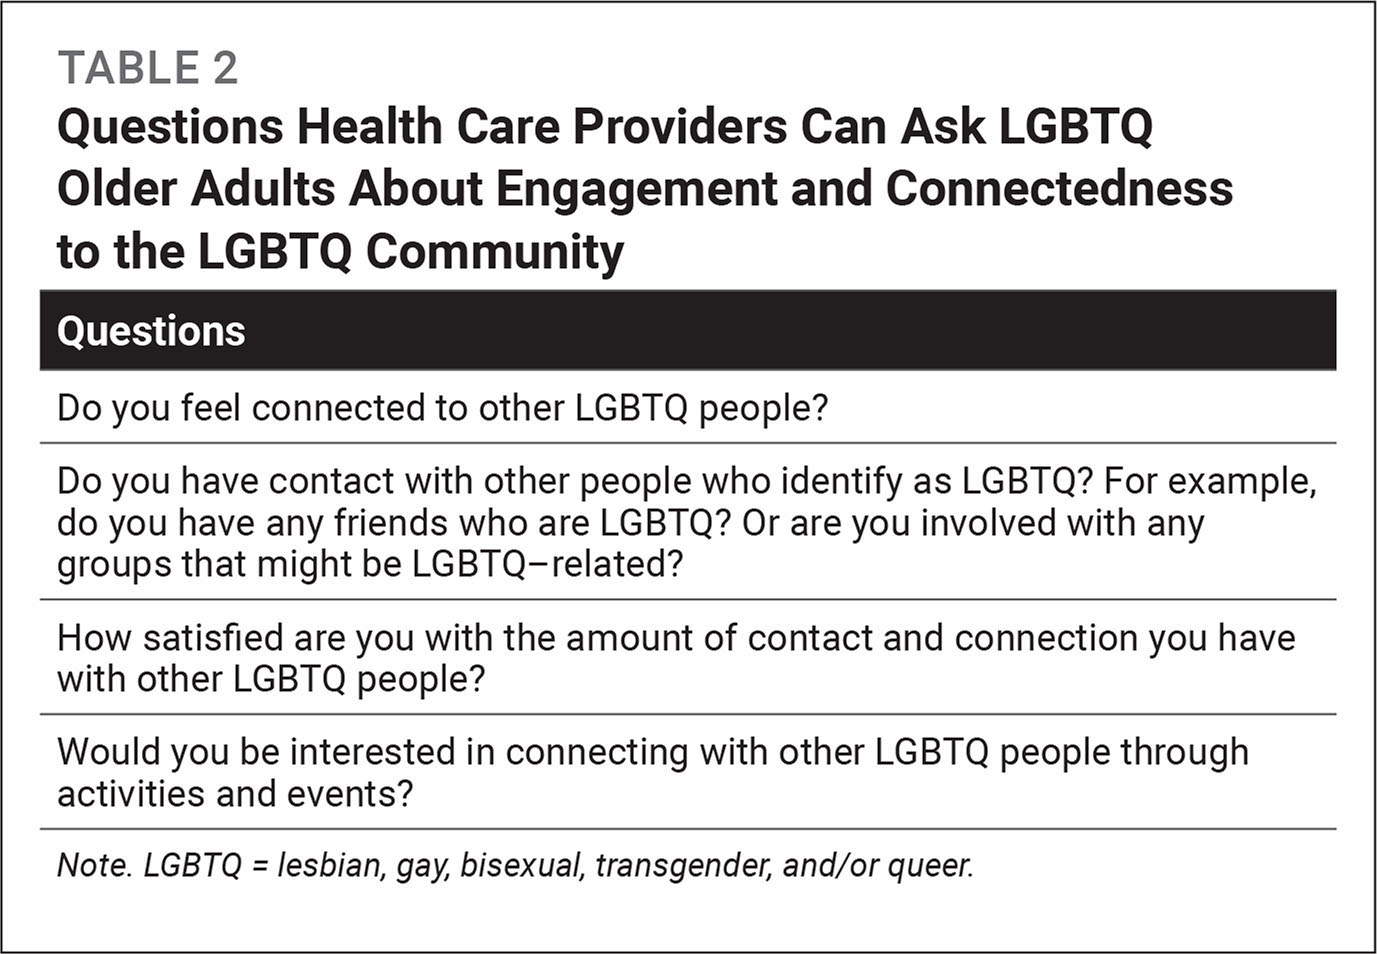 Questions Health Care Providers Can Ask LGBTQ Older Adults About Engagement and Connectedness to the LGBTQ Community